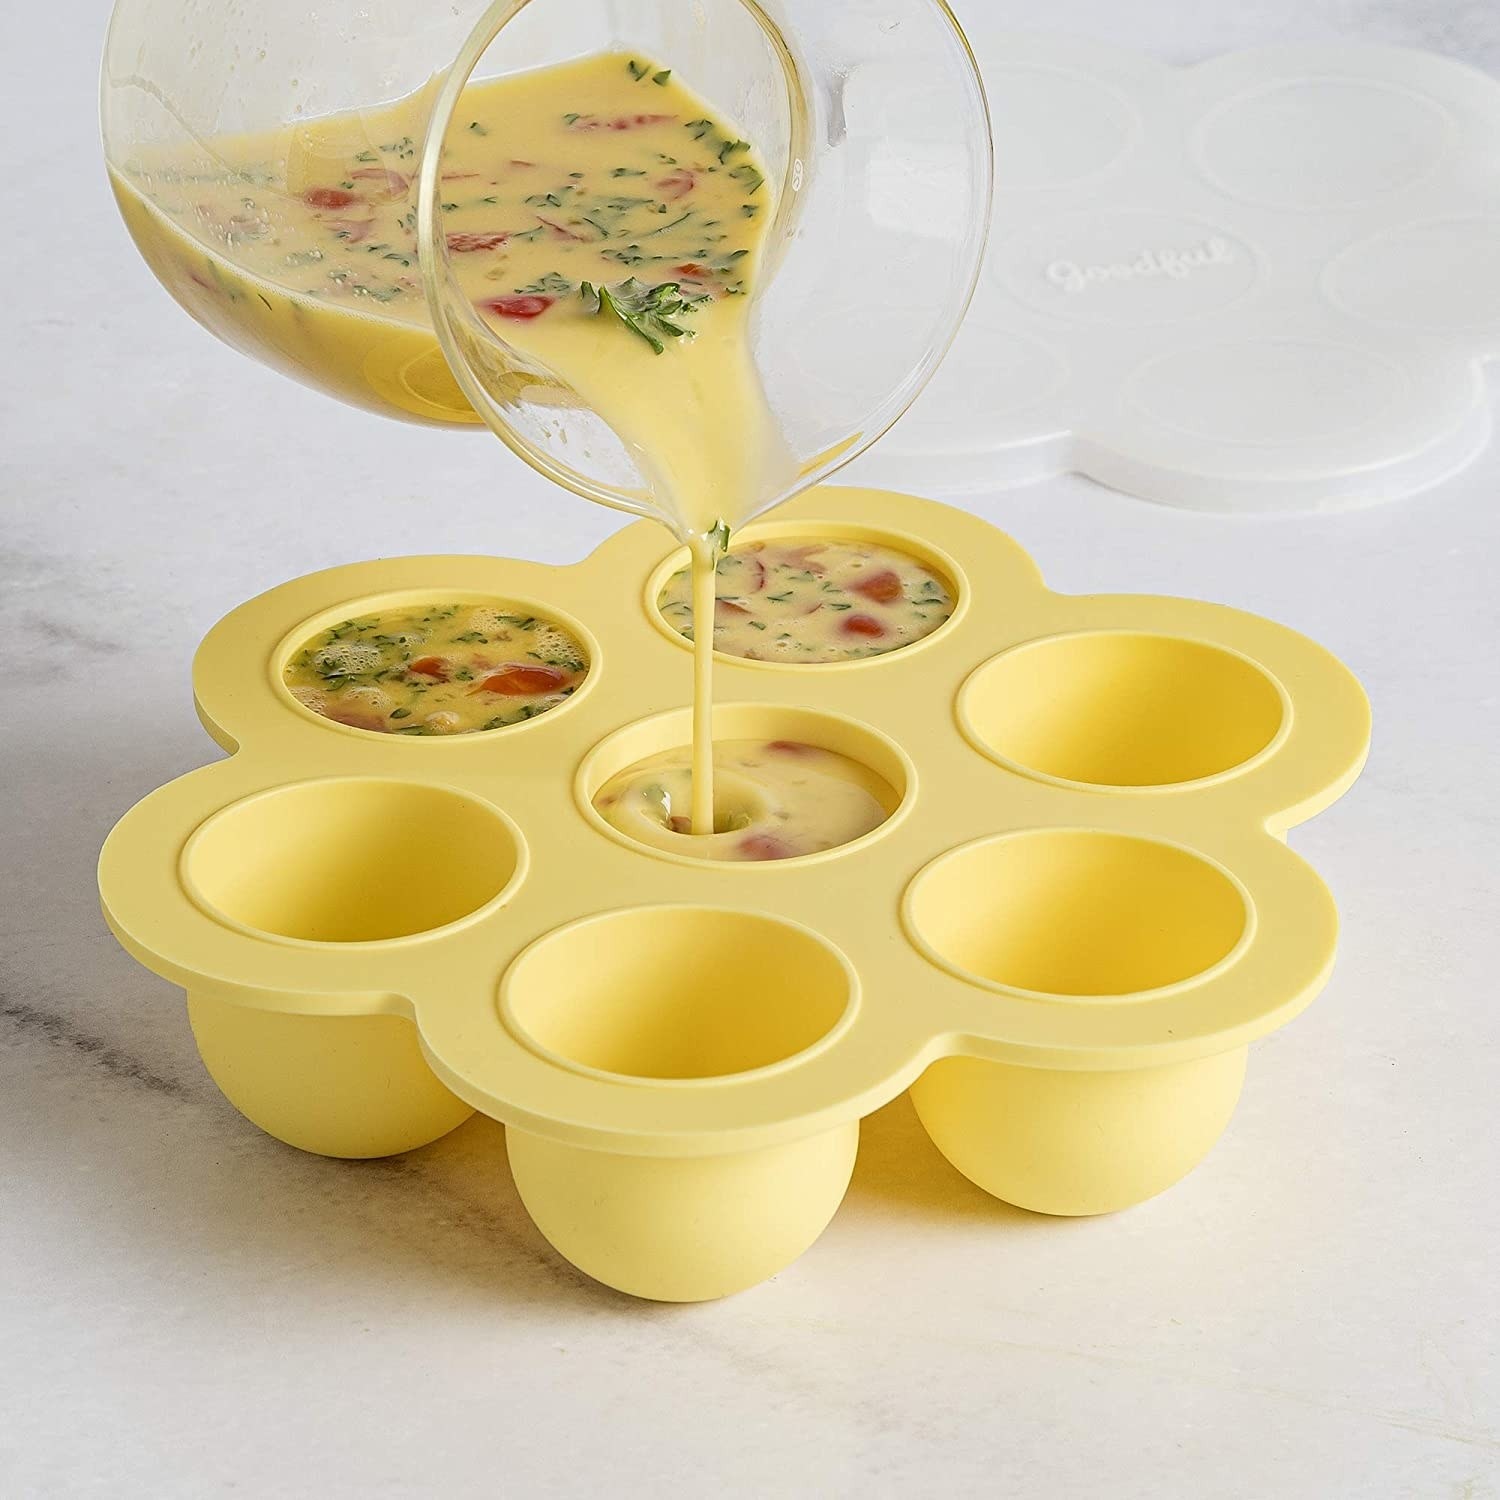 Mixture of eggs and other ingredients being poured into the mold to make egg bites